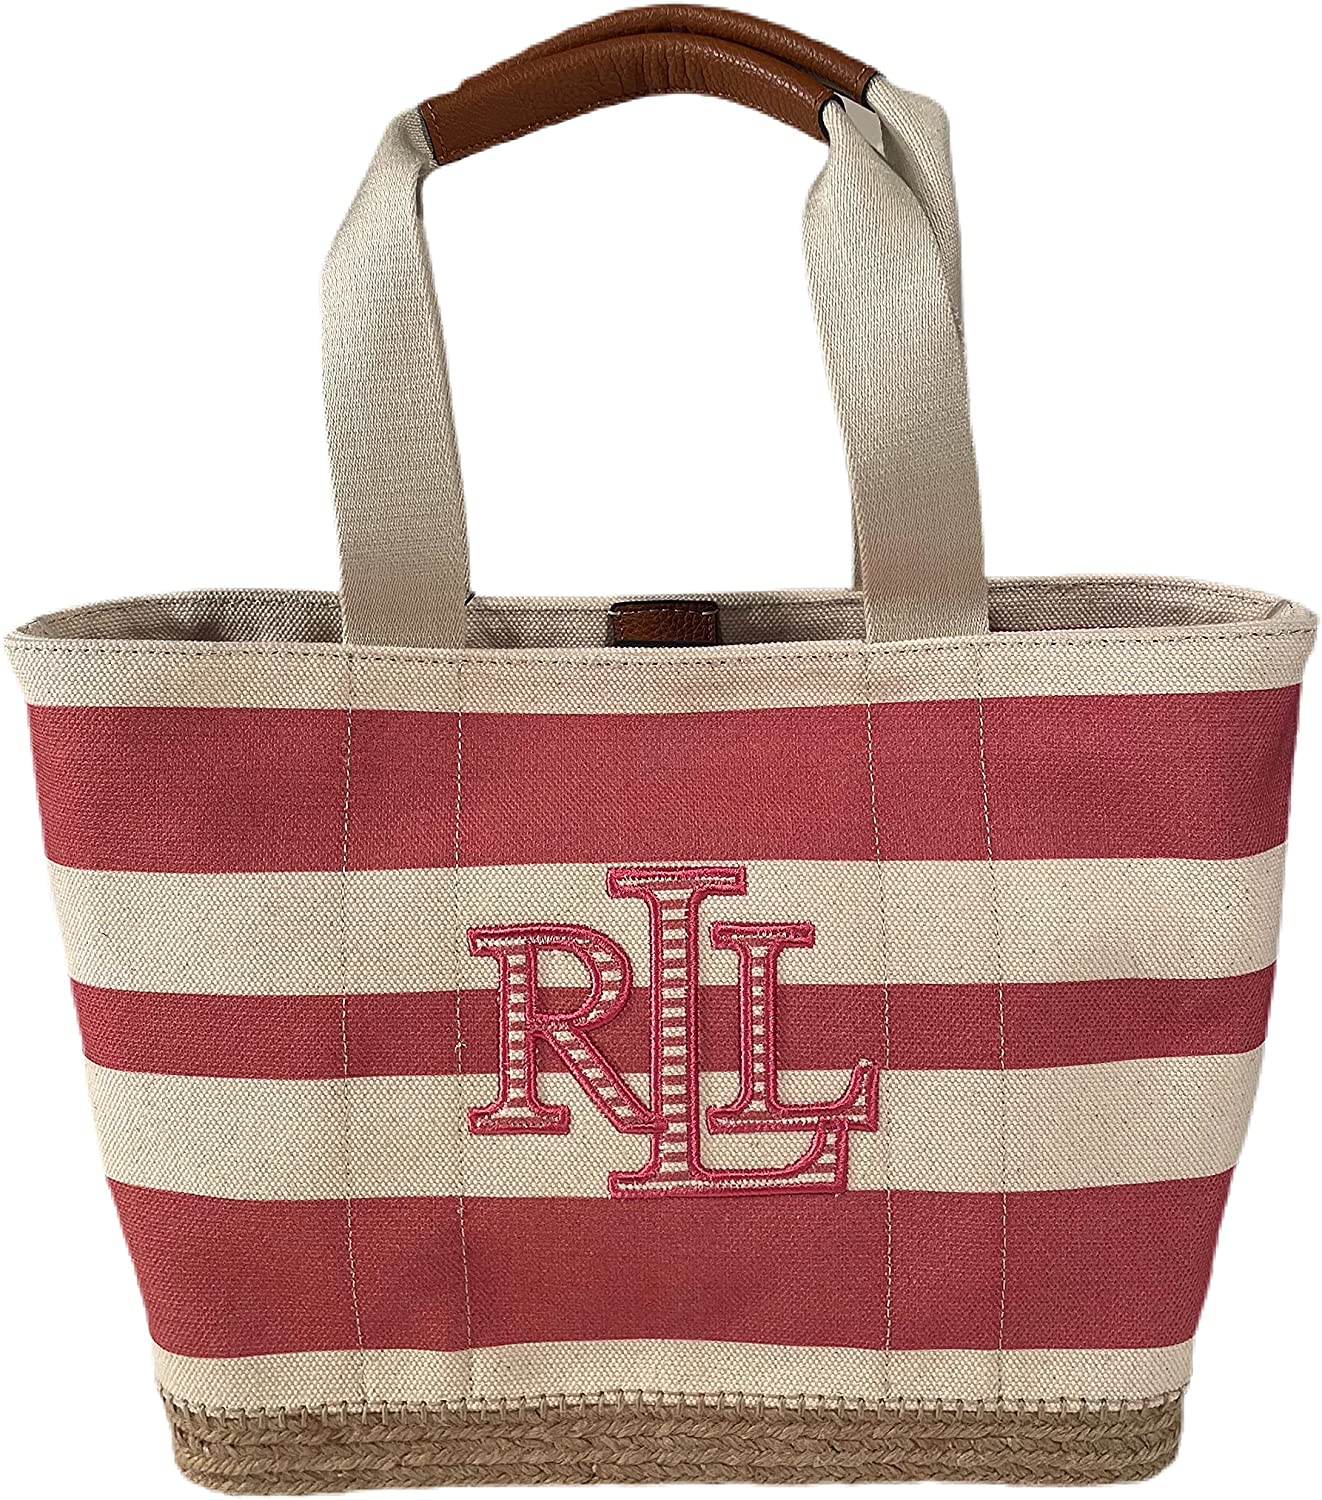 WOMEN'S EMBROIDERED LOGO PINK STRIPED COTTON CANVAS BRAIDED STRAW BASE LEATHER BOTTON TOTE BAG PURSE